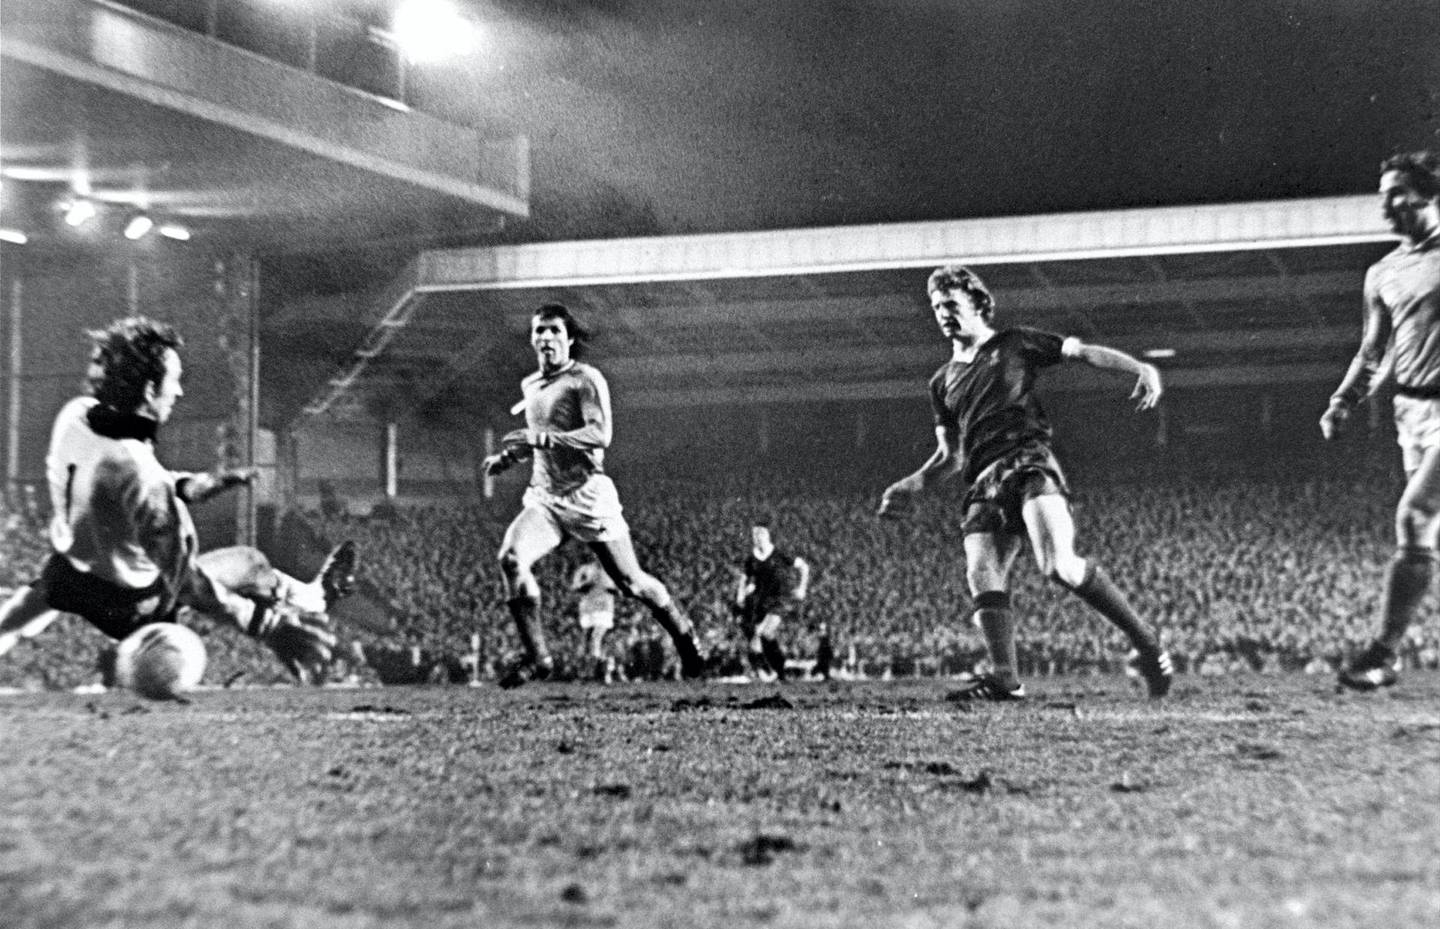 LIVERPOOL, ENGLAND - MARCH 16:  (THE SUN OUT)  David Fairclough of Liverpool who as the famous 'super sub' comes on and scores one of the most important goals in the club's history as he nets the final goal of the match to win the match and tie during the European Cup Quarter-Final Second Leg match between Liverpool and St Etienne held on March 16, 1977 at Anfield, in Liverpool, England. Liverpool won the match 3-1, winning the tie 3-2 on aggregate. (Photo by Liverpool FC via Getty Images)